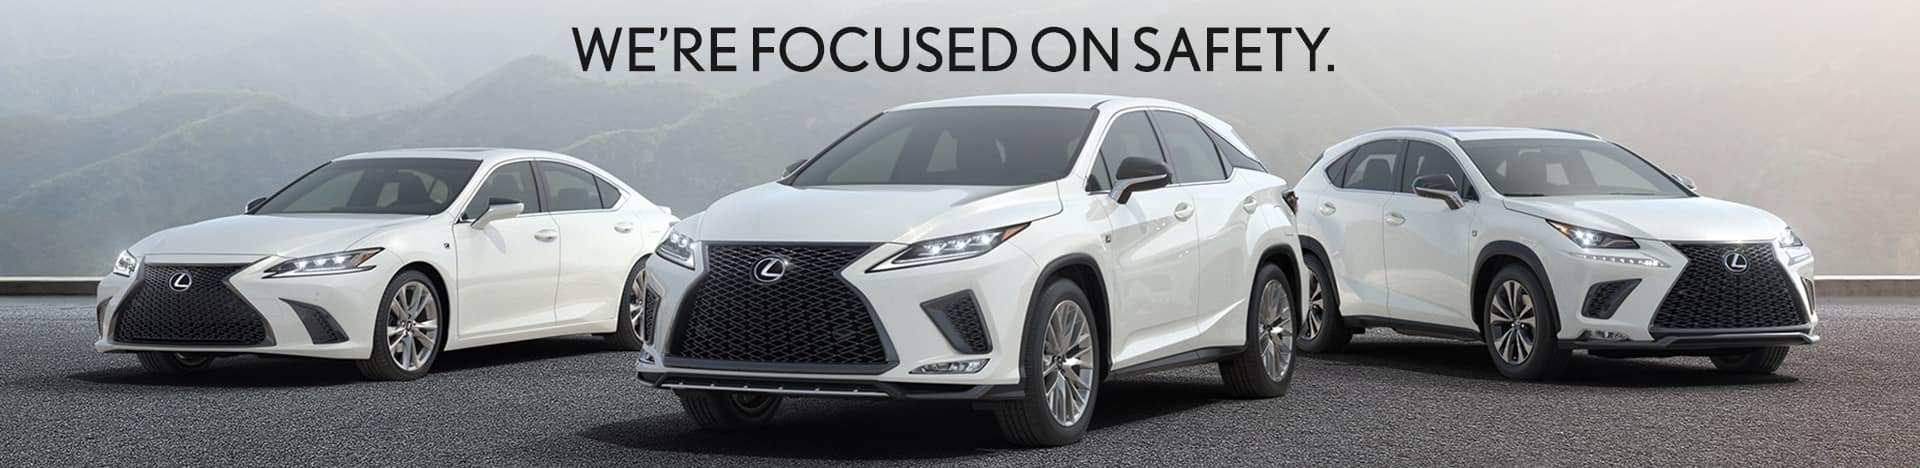 We're focused on Safety at Thompson Lexus Willow Grove.